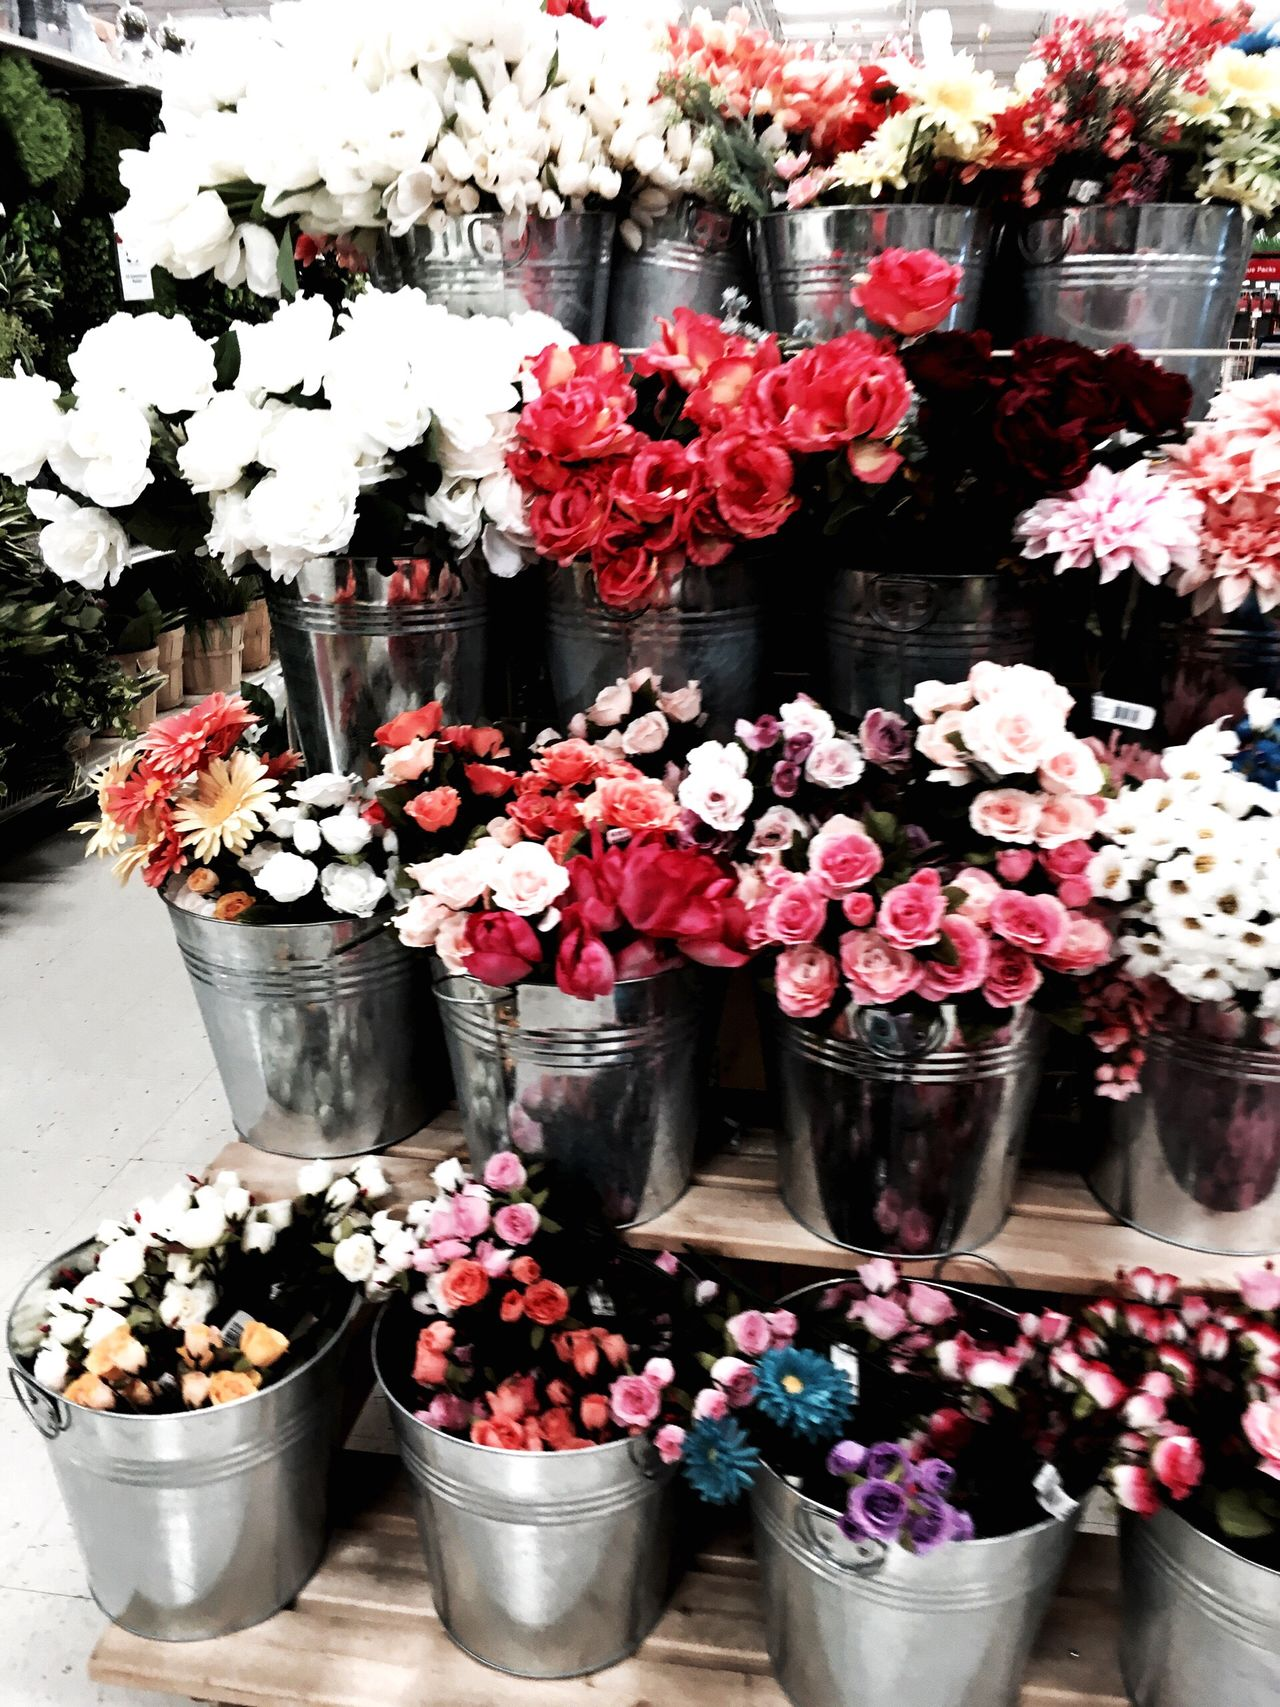 Found flowers at the store. Flower Flower Shop Retail  Nature Beauty In Nature Flower Market First Eyeem Photo